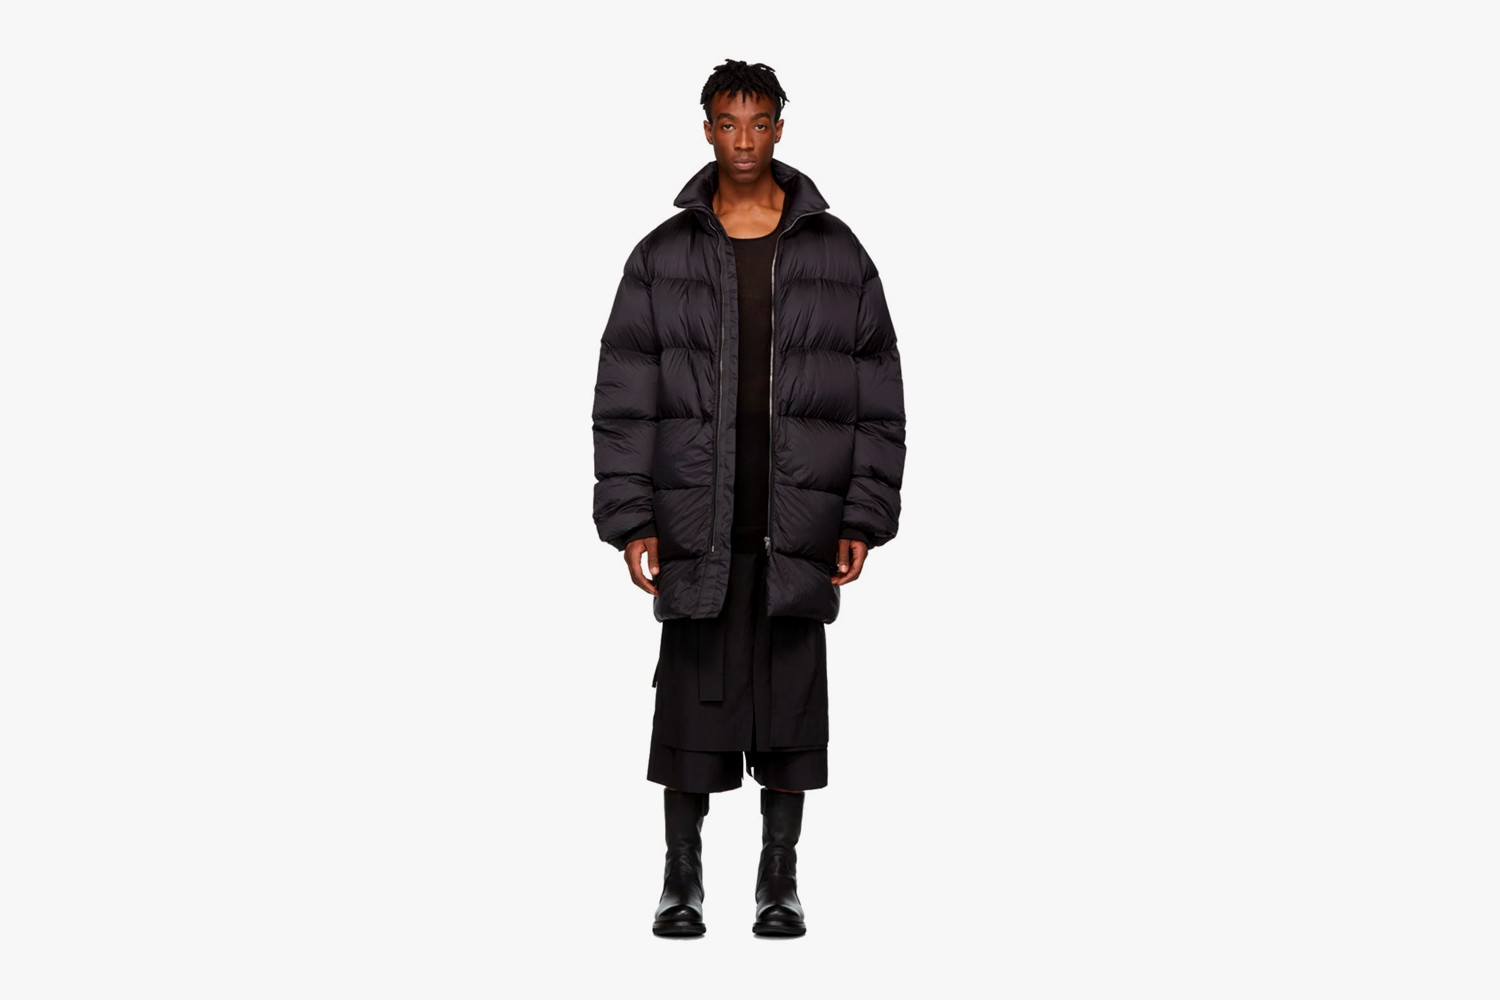 Best Cold Weather Wares Next Fall Winter 2020 Jackets Pants Gloves Scarves Fleece Gucci Burton AK Eye/Loewe/Nature Moncler Genius The North Face Black Series ASICS Kiko Kostadinov Craig Green Rick Owens Off-White™ LN-CC Browns MATCHESFASHION SSENSE LUISAVIAROMA